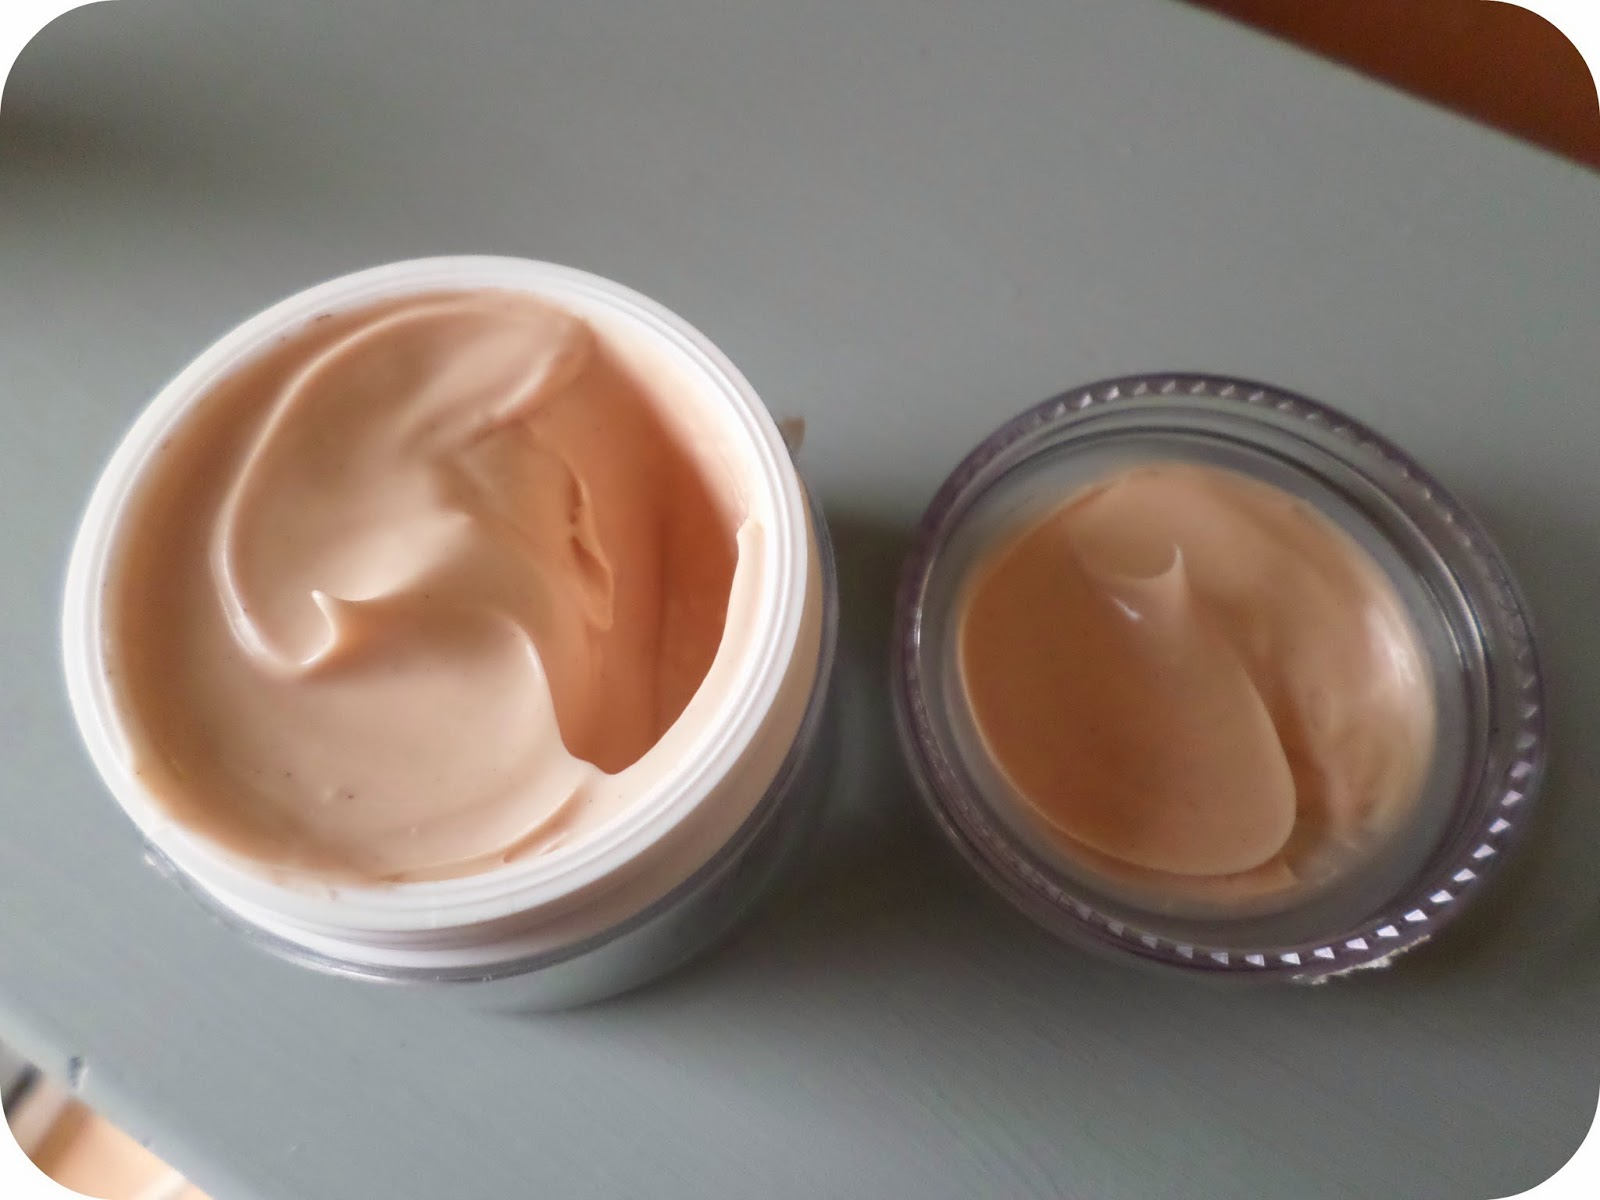 Yungskin face cream